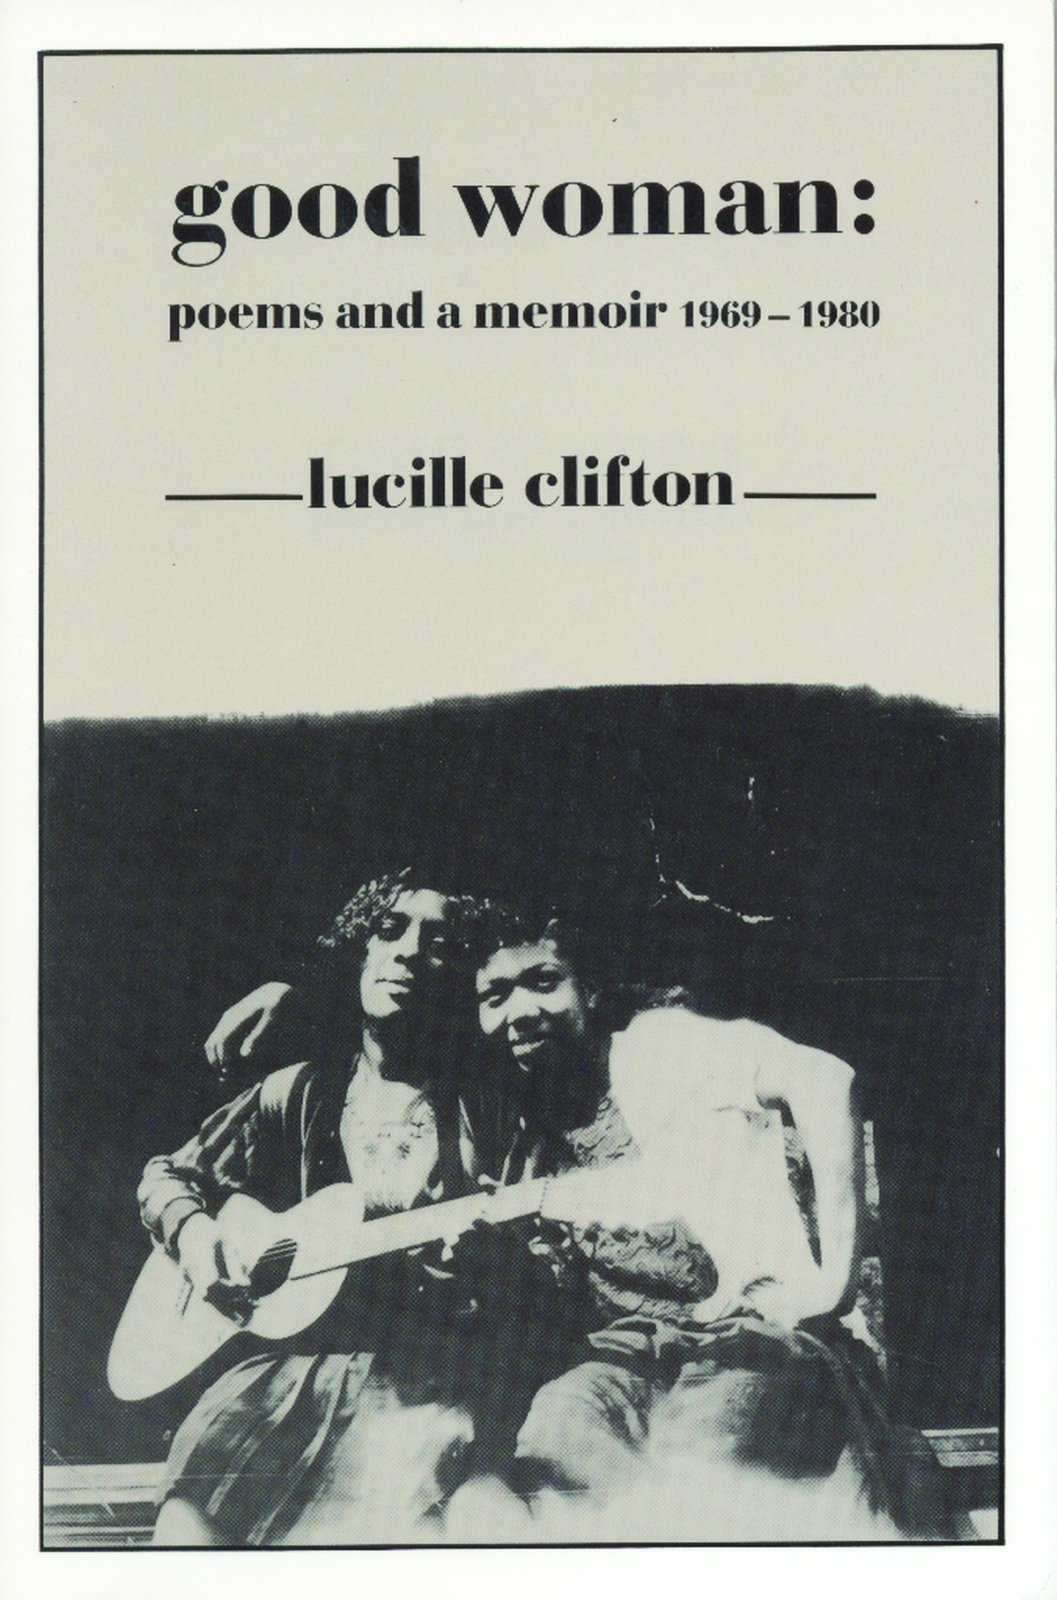 Good Woman: Poems and a Memoir 1969-1980 by Lucille Clifton